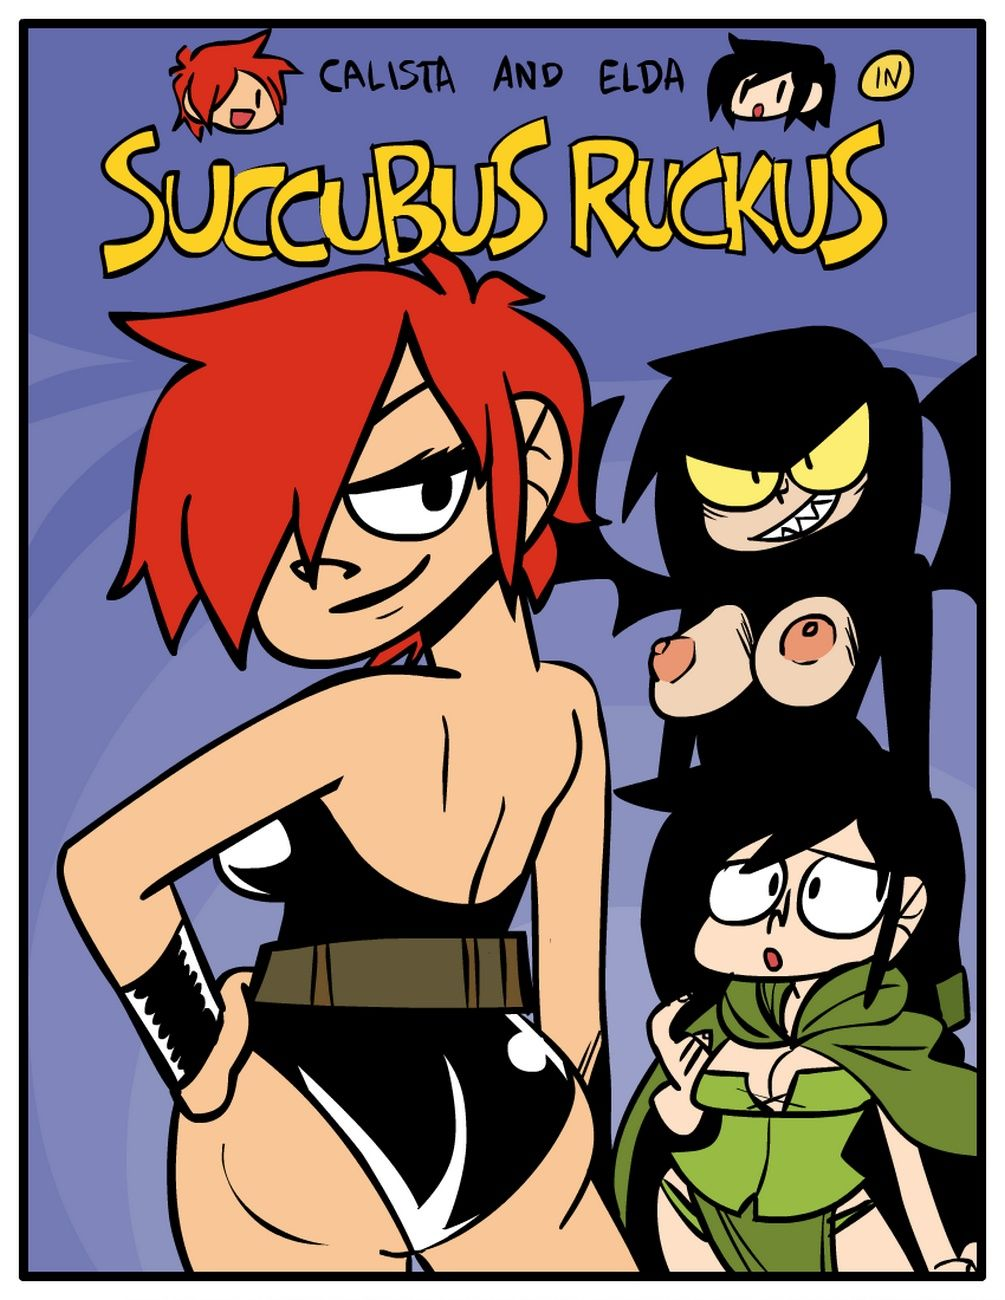 Succubus Ruckus- Calista and Elda porn comics 8 muses